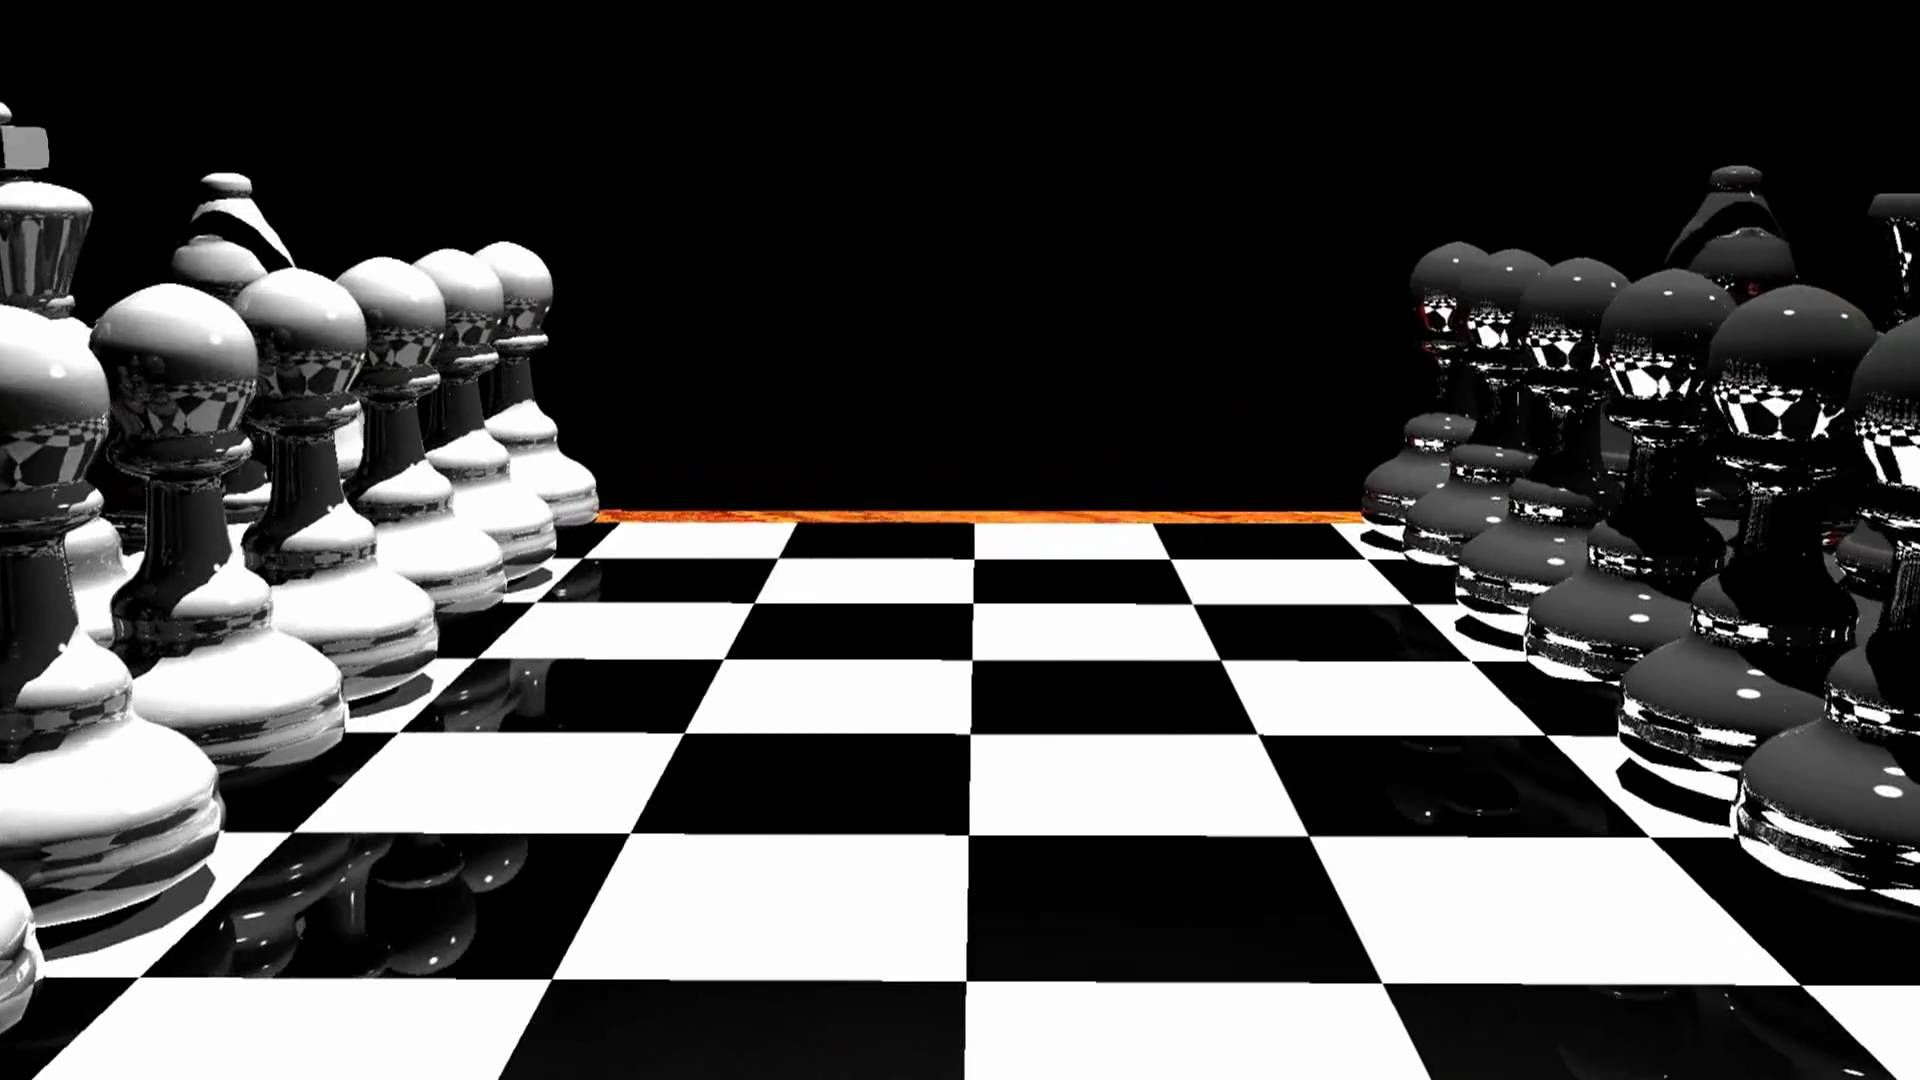 chess wallpapers high quality images of chess in amazing hd